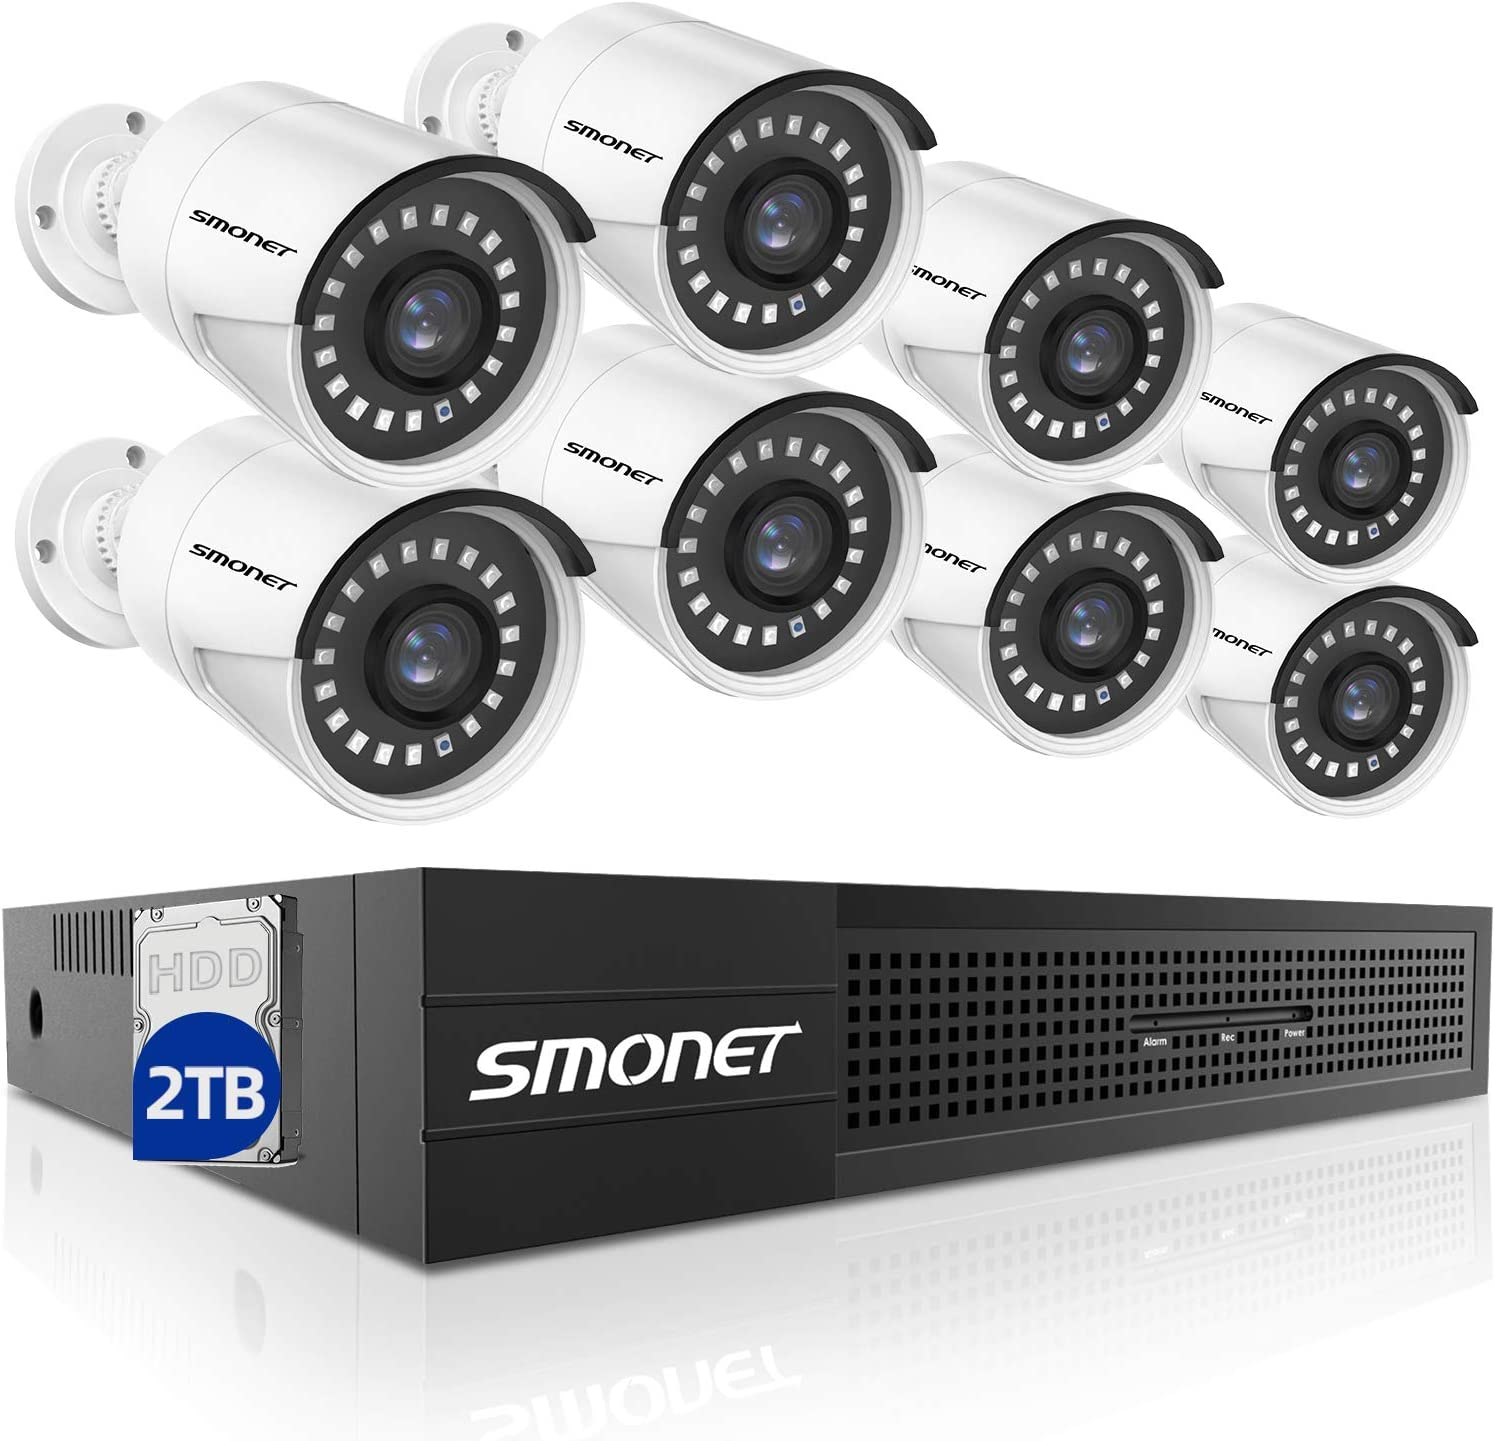 SMONET 5MP PoE Home Security Camera System,8CH NVR Video Security System(2TB Surveillance Hard Drive),8x 5MP (2560TVL) Outdoor Indoor IP Cameras,Power over Ethernet,Free APP,P2P,24/7 Recording